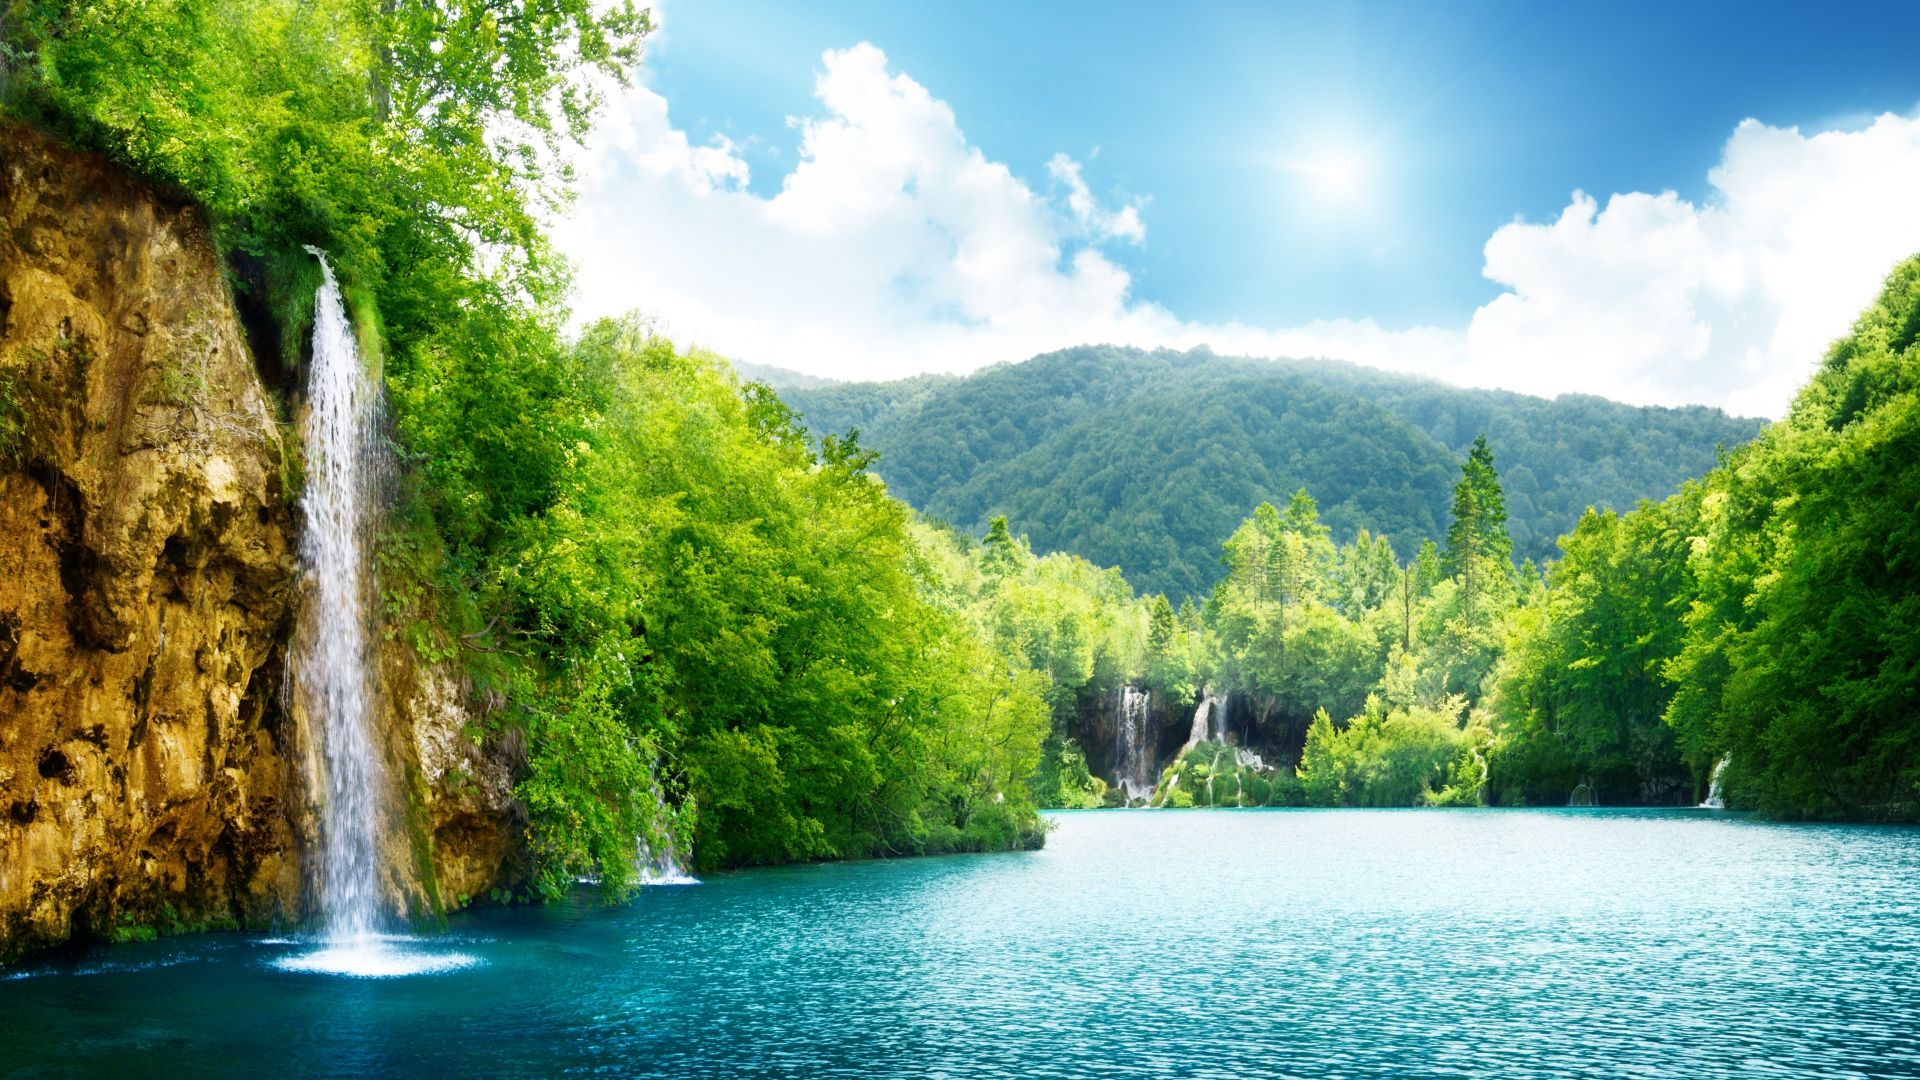 Nature Waterfall Summer Lake Trees 1920x1080 Hd Nature Wallpapers Waterfall Wallpaper Nature Desktop